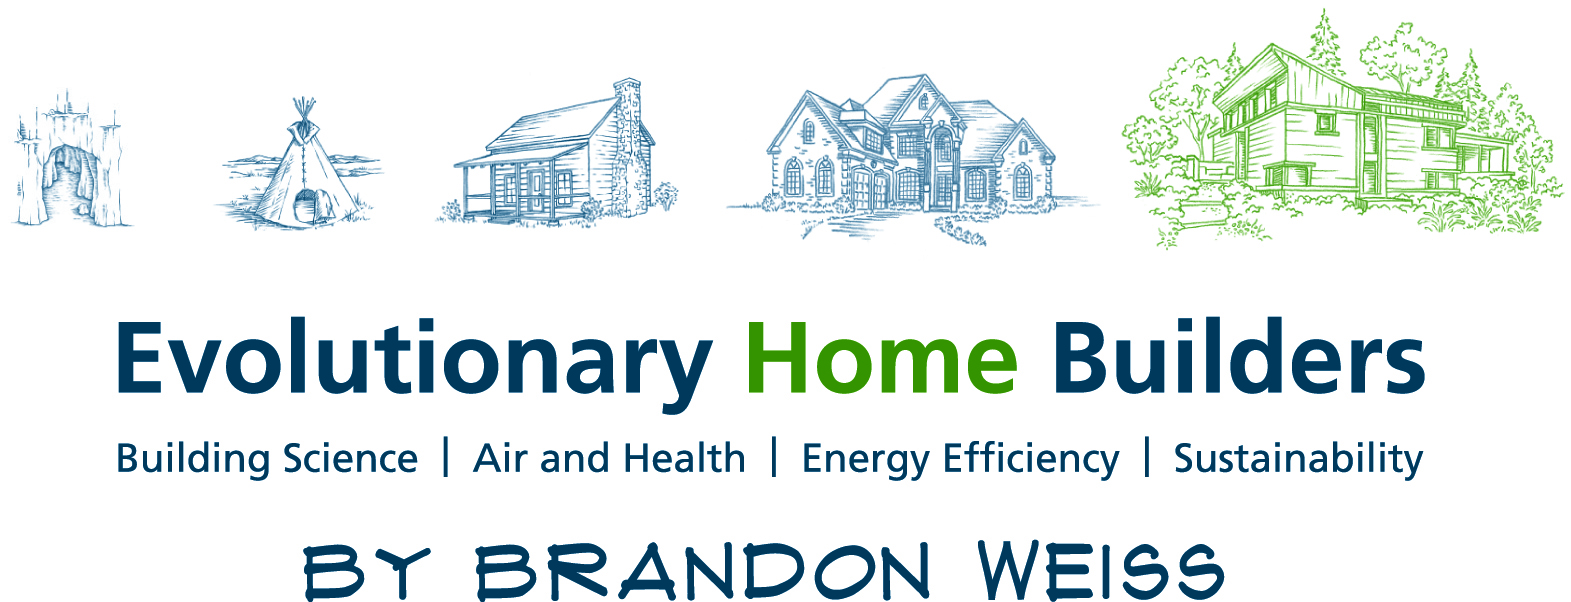 Evolutionary Home Builders LLC company logo